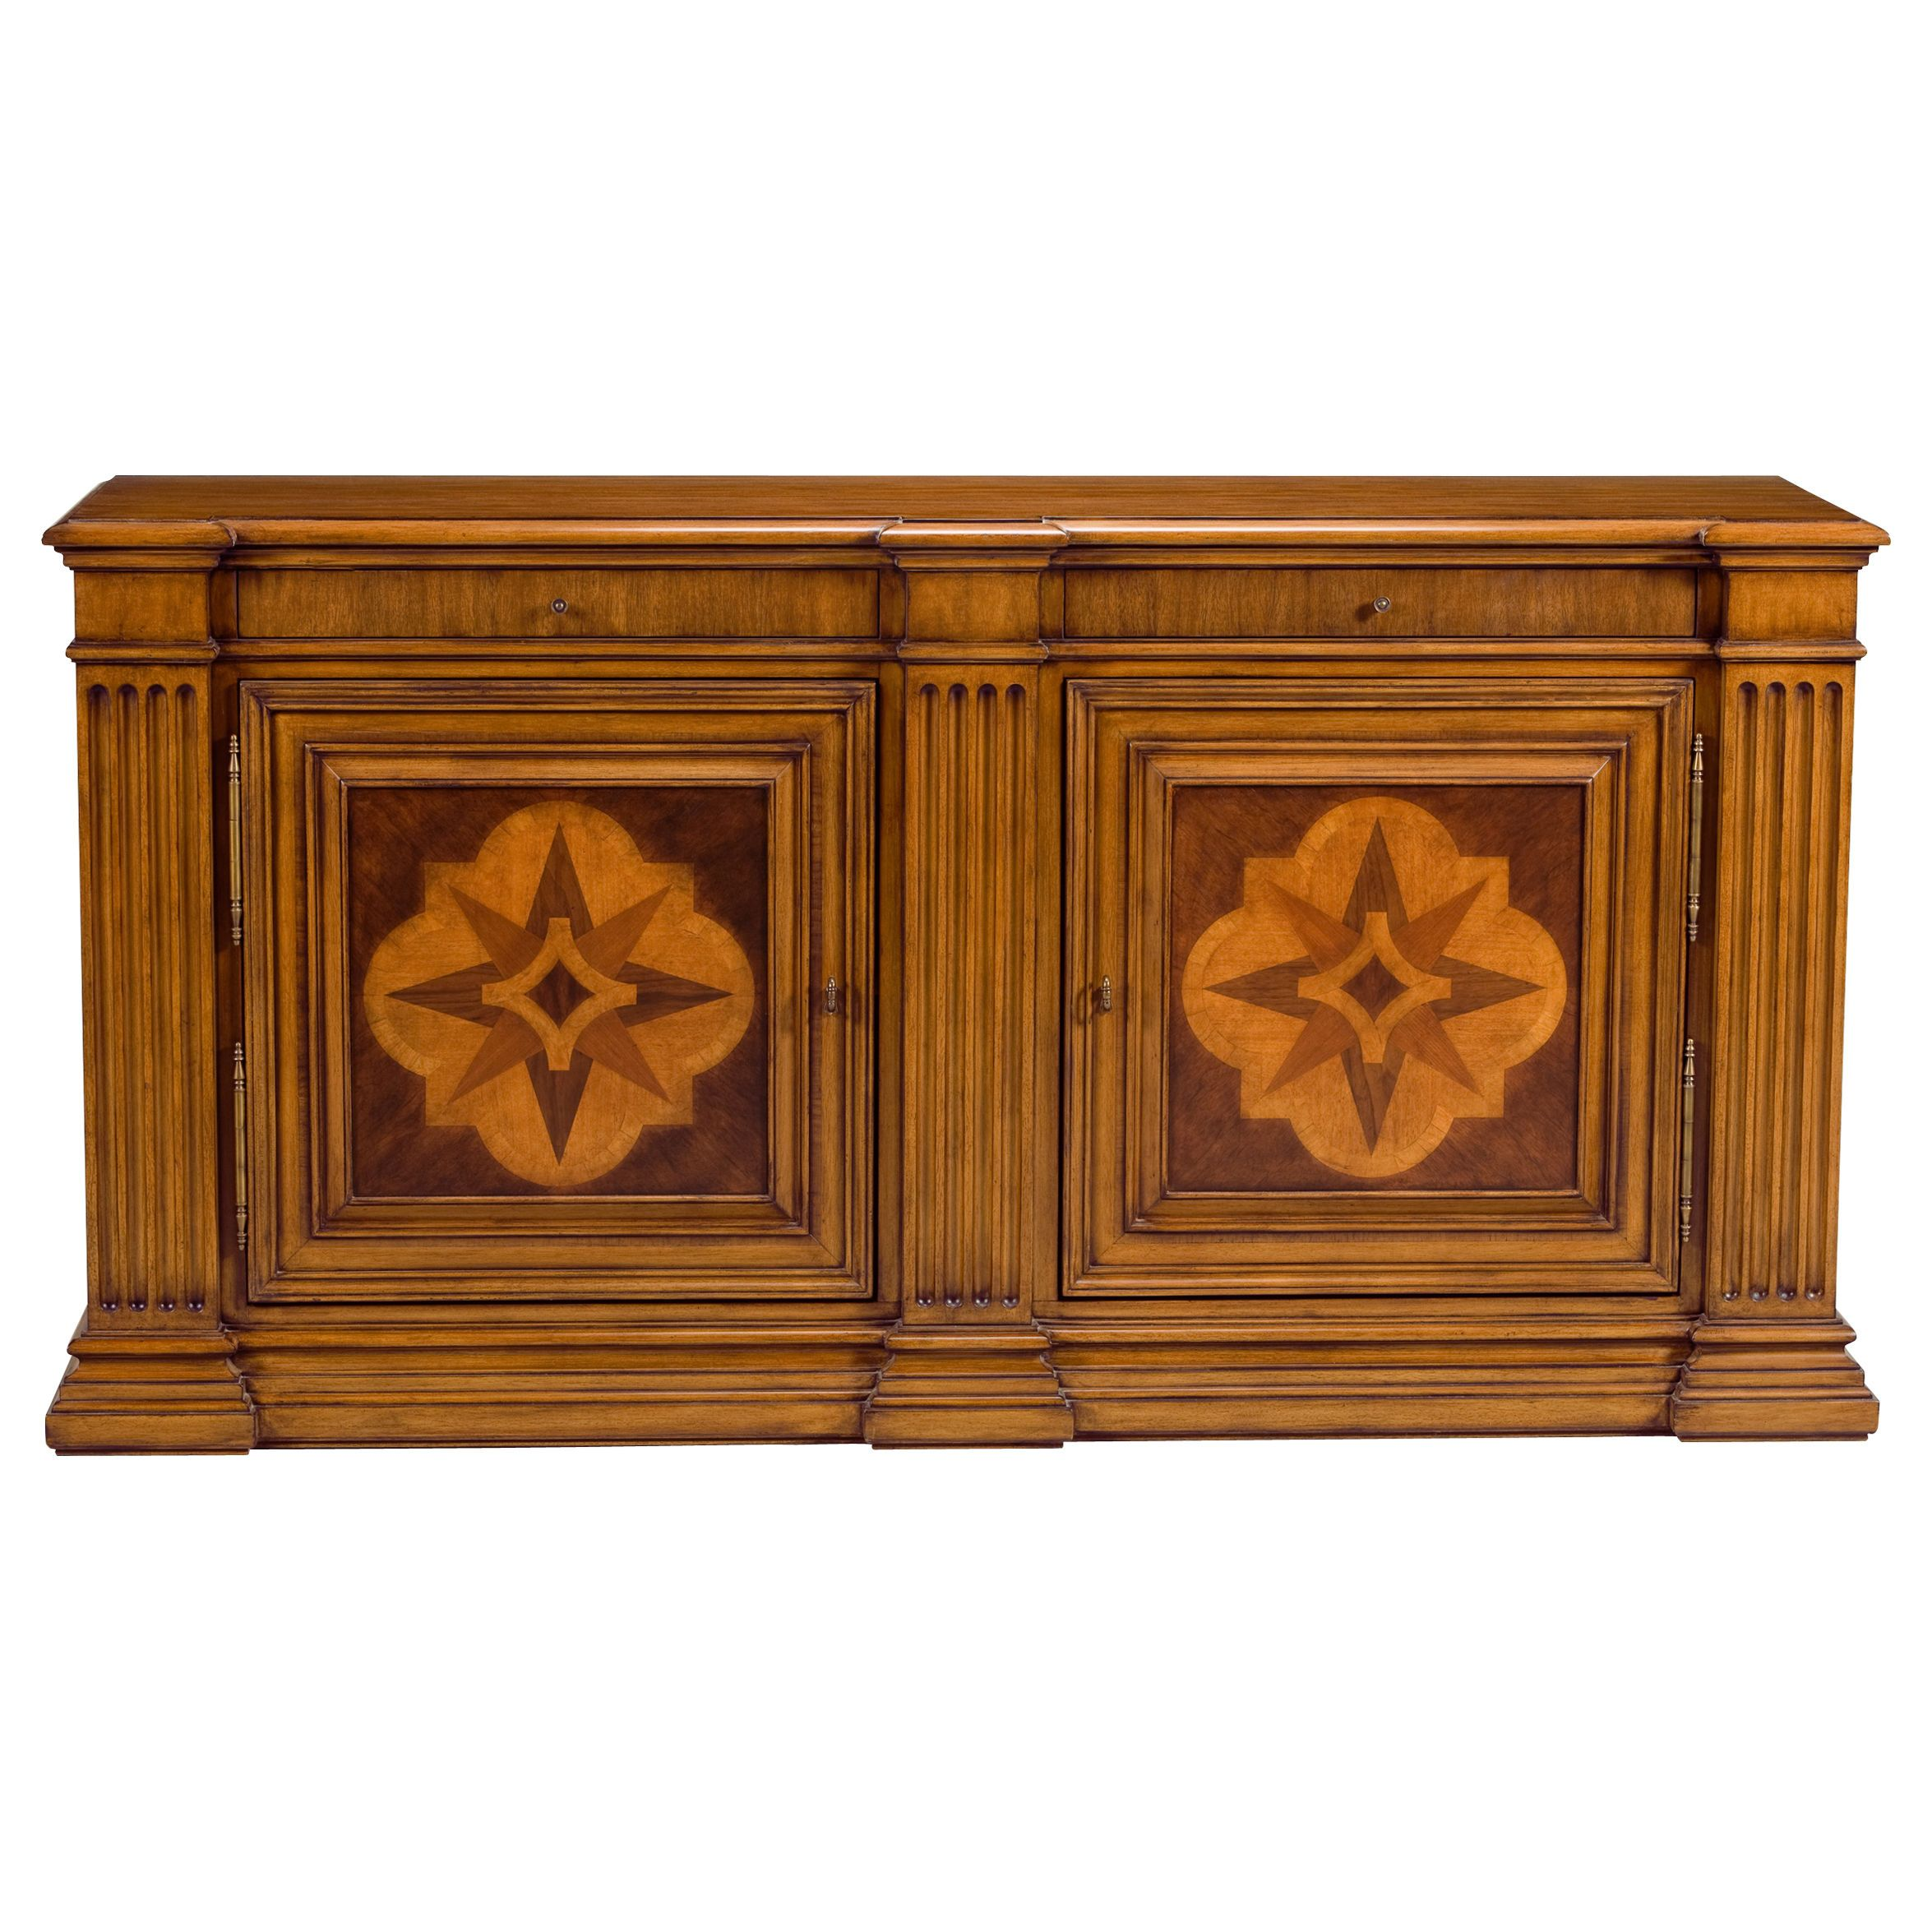 dining room sideboards and buffets. buy ethan allen\u0027s lombardy marquetry sideboard or browse other products in buffets, sideboards \u0026 servers. dining room and buffets